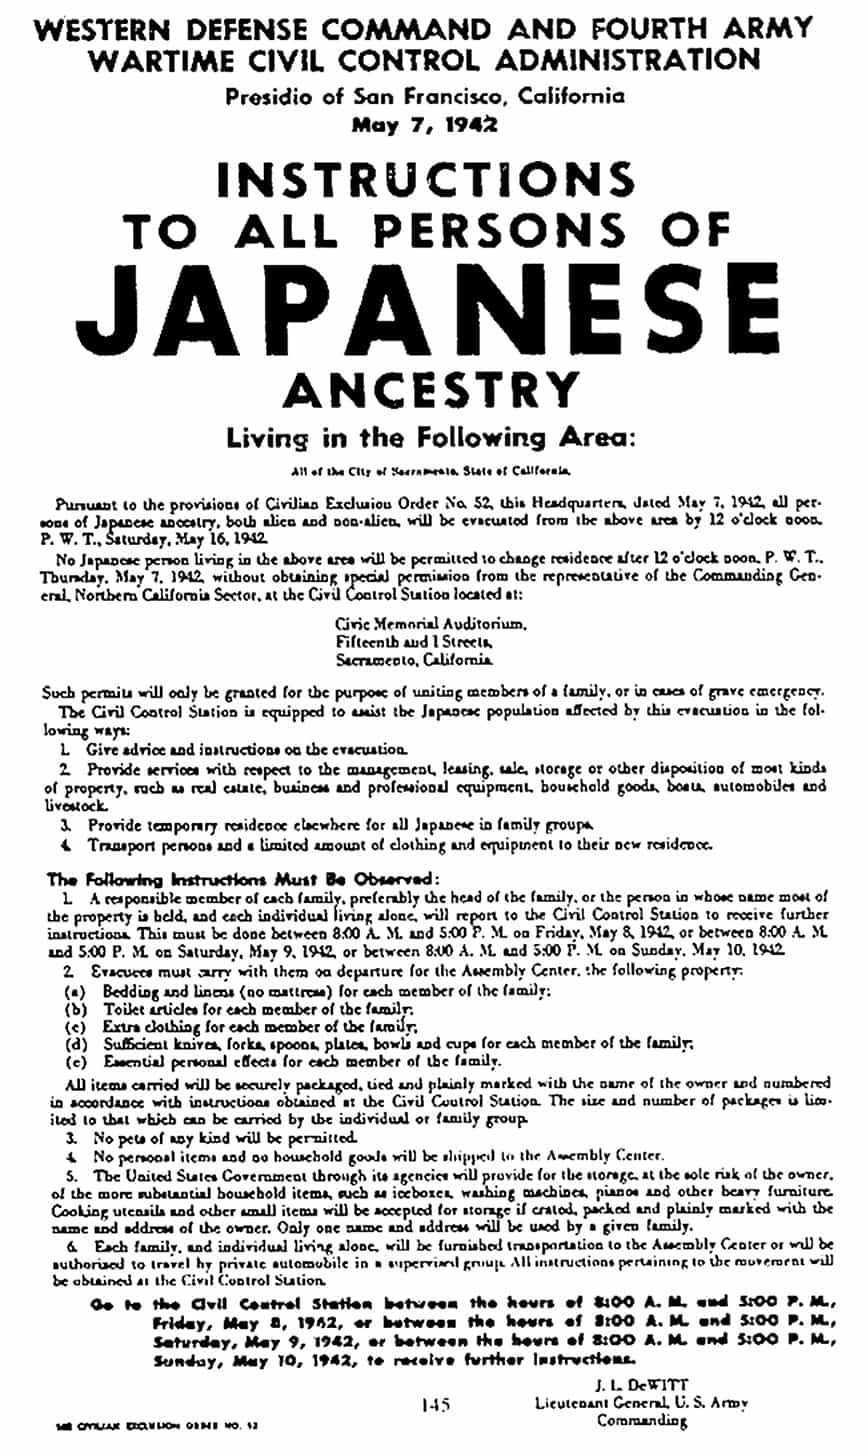 Japanese Ancestry Internment Order